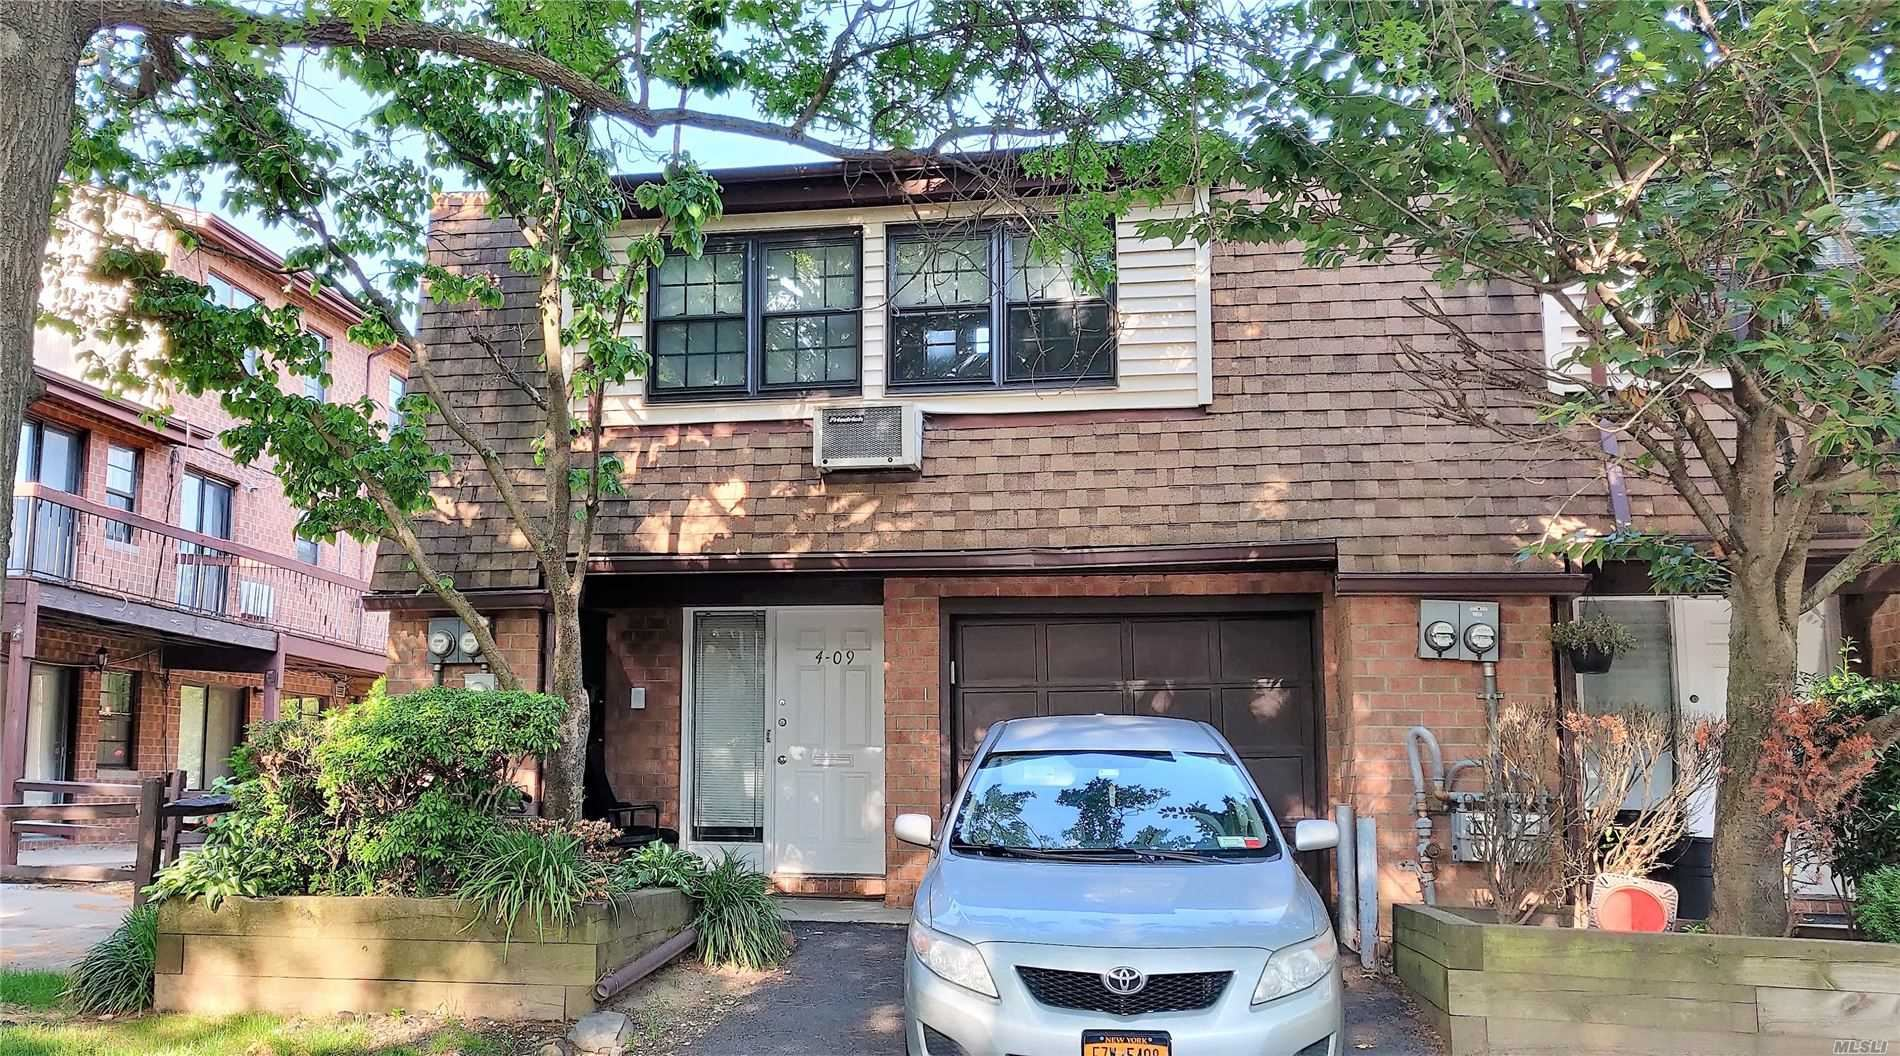 409 121 Street #1, College Point, NY 11356 - MLS#: 3220640